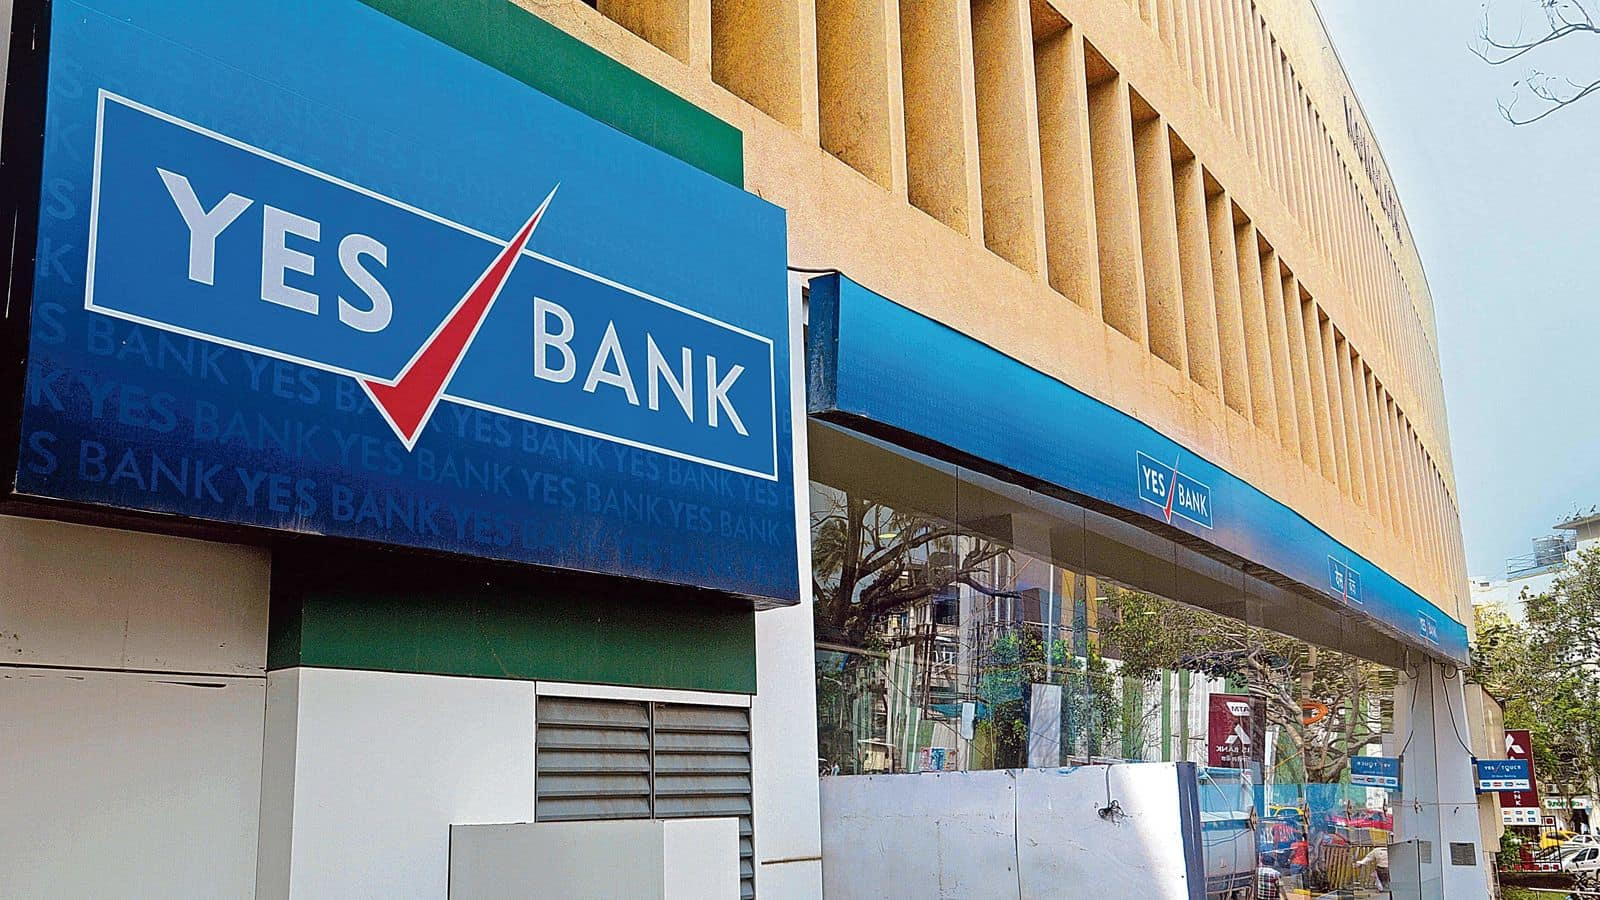 12 entities express interest in Yes Bank's ARC proposal